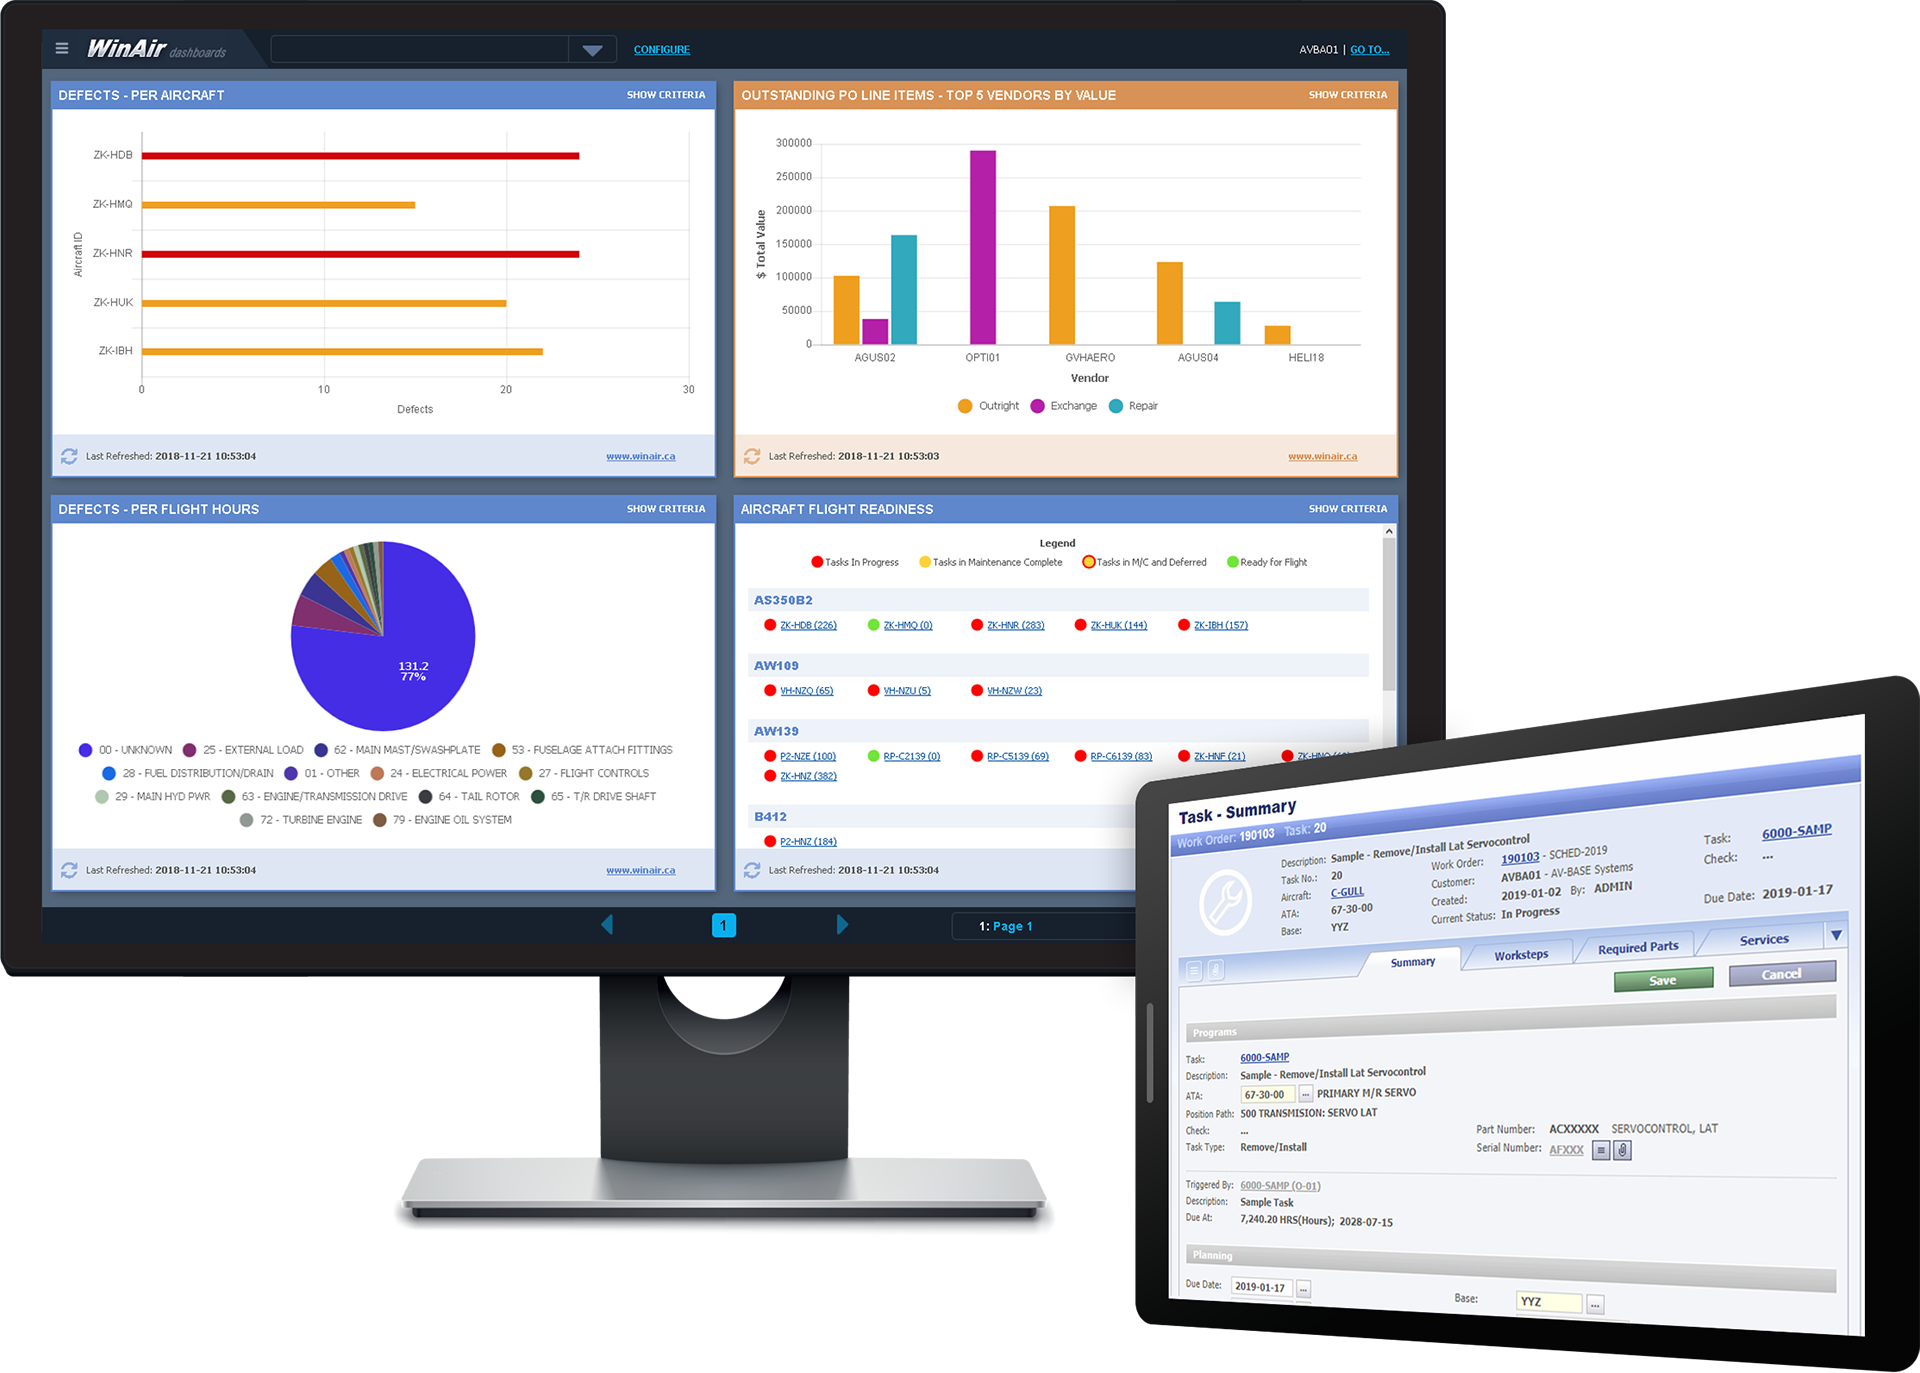 WinAir Dashboards Displayed on Desktop and Task Card Summary displayed on Tablet